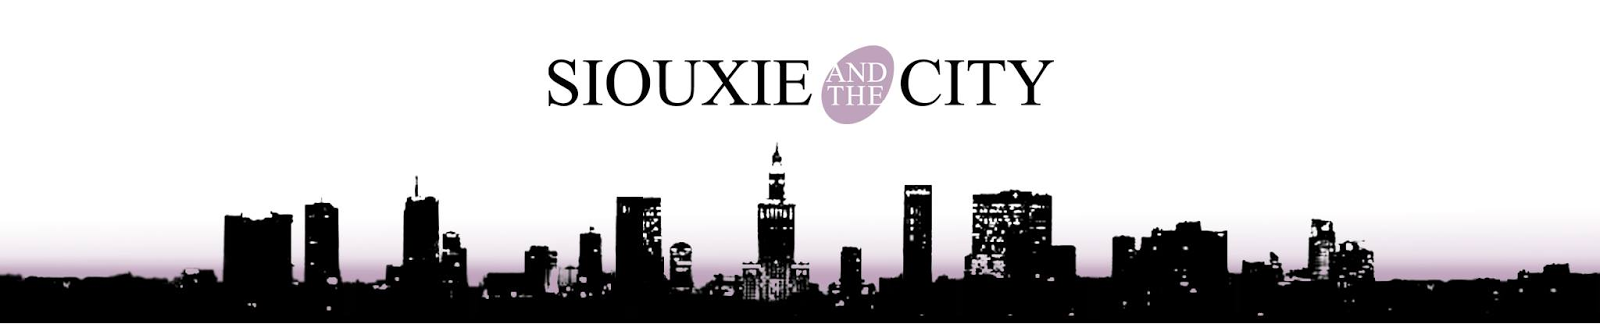 Siouxie and the City / blog kosmetyczny